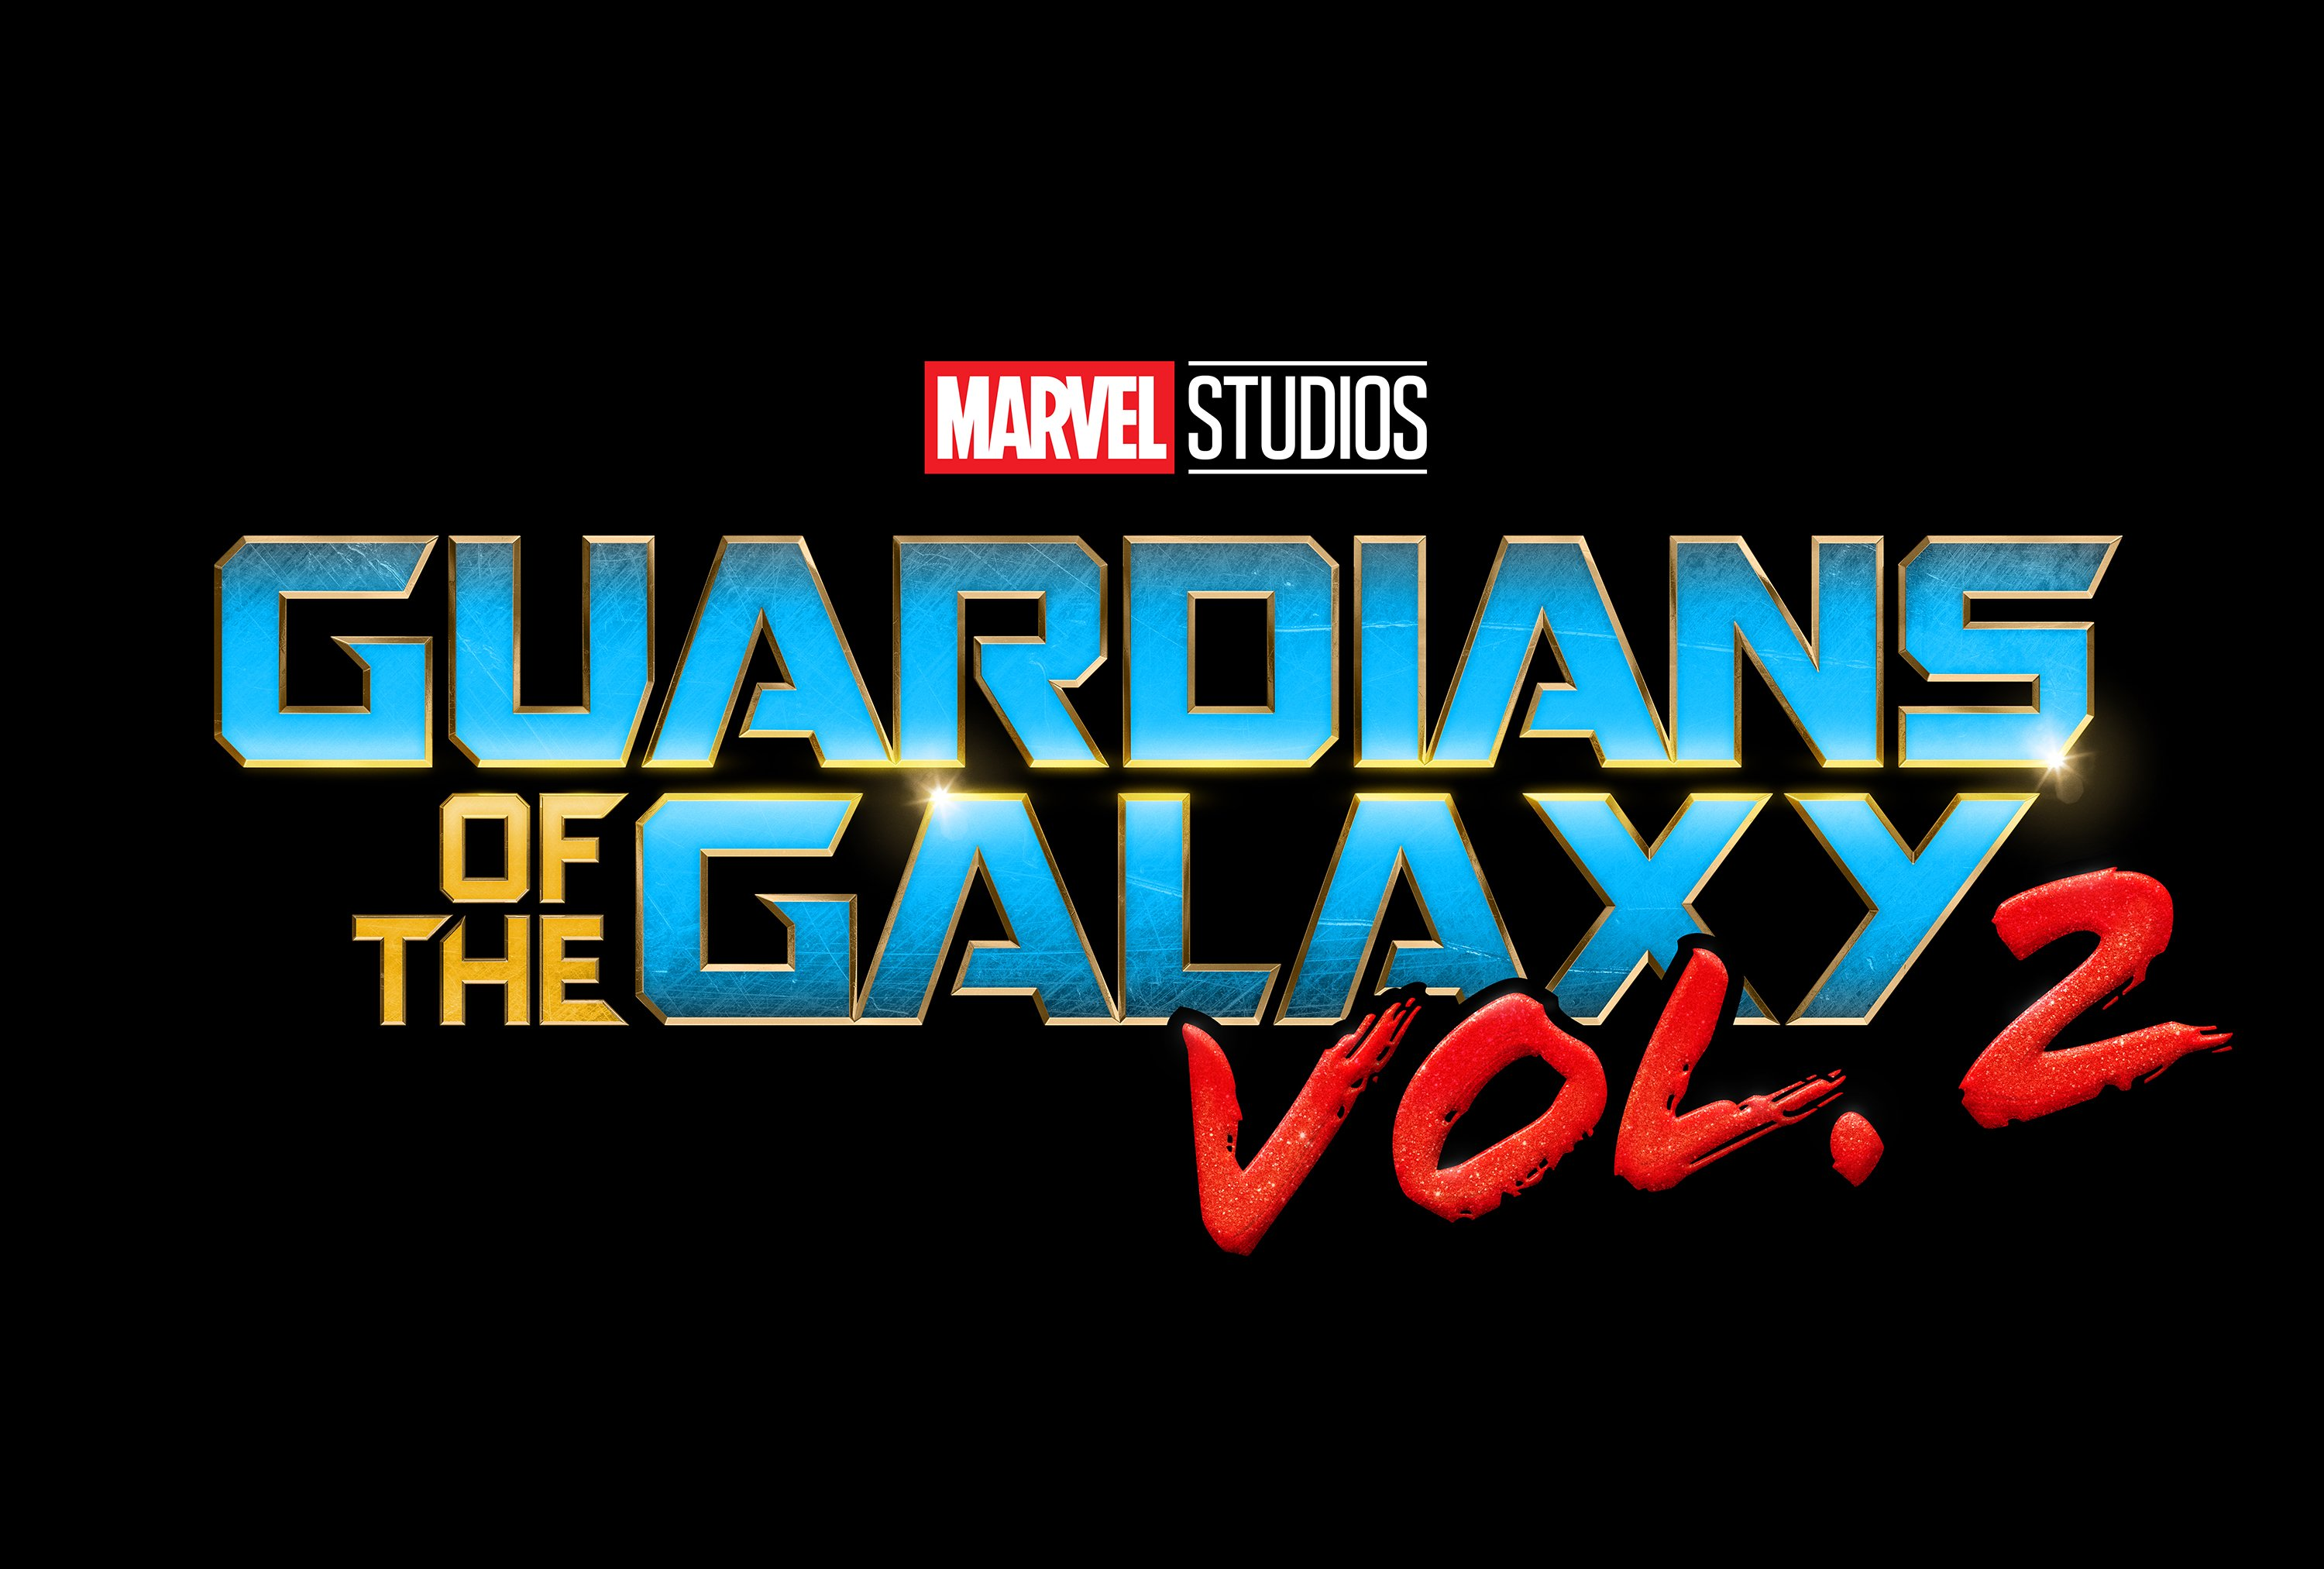 Guardians of the Galaxy; Vol. 2...https://storgy.com/2017/05/04/film-review-guardians-of-the-galaxy-vol-2/